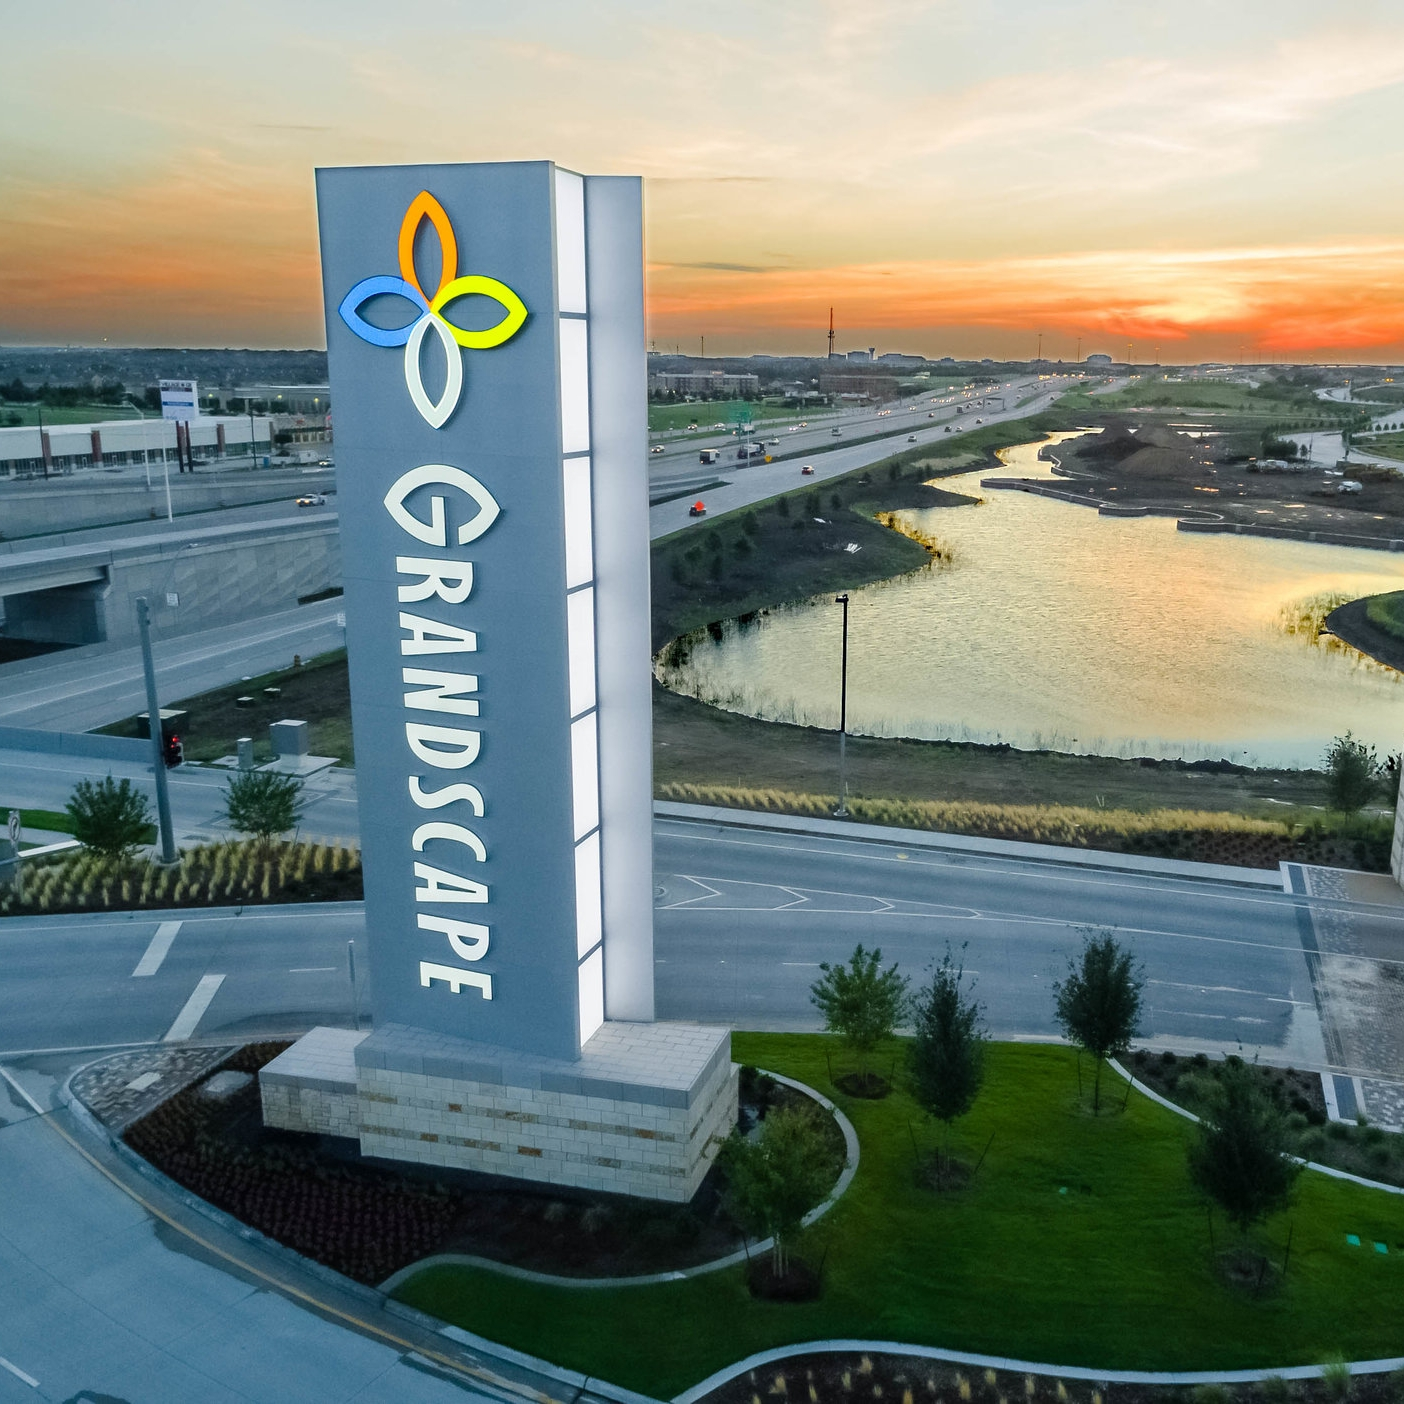 High Profile Real Estate Developments - High Profile Real Estate Developments (Single-use, Mixed-use) require special thought and consideration. Our process covers both tactical elements, such as creating a wayfinding methodology, and the brand elements, such as establishing a unique corporate identity. Chandler has performed work for a number of high-profile campuses such as The Star (The Dallas Cowboys World Headquarters) and Cypress Waters. Our mixed-use development expertise is unmatched. Working with mega developers such as Berkshire-Hathaway on Grandscape and high profile architects like RSM Design on The Star (The Dallas Cowboys World Headquarters), Chandler knows how to deliver on the highest profile projects. We make business feel at home.